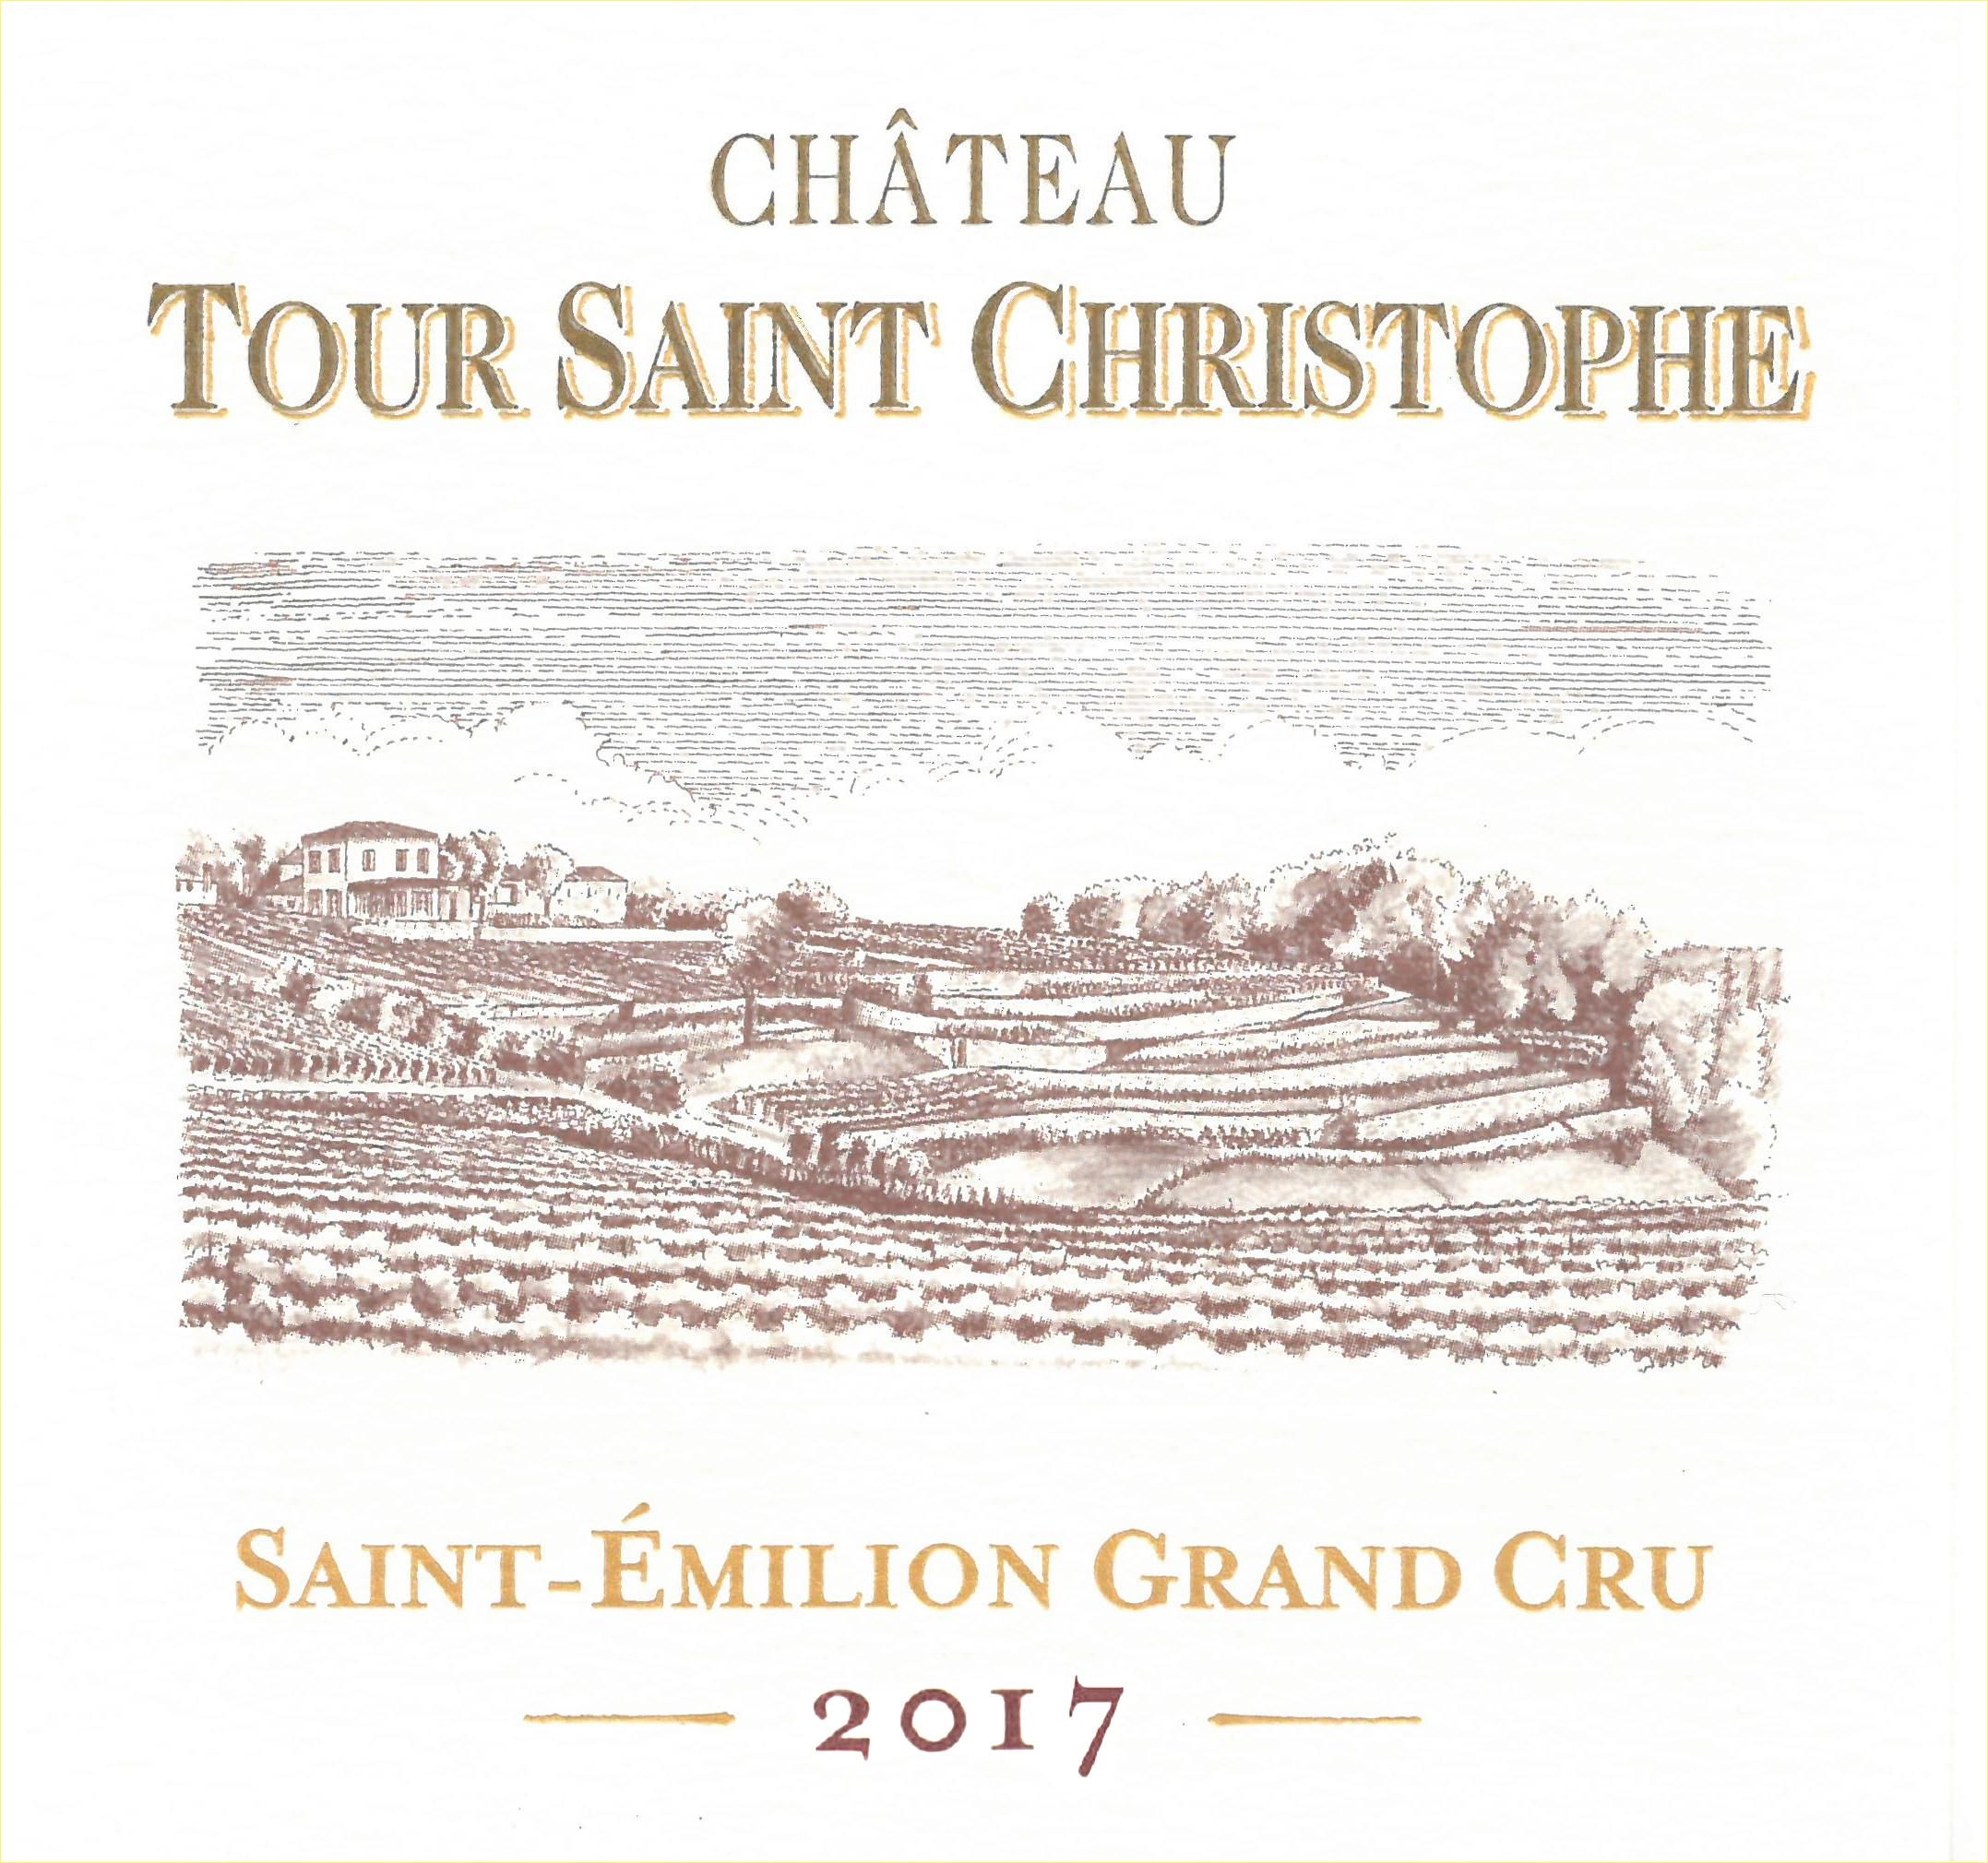 Tour Saint Christophe  2017  Front Label